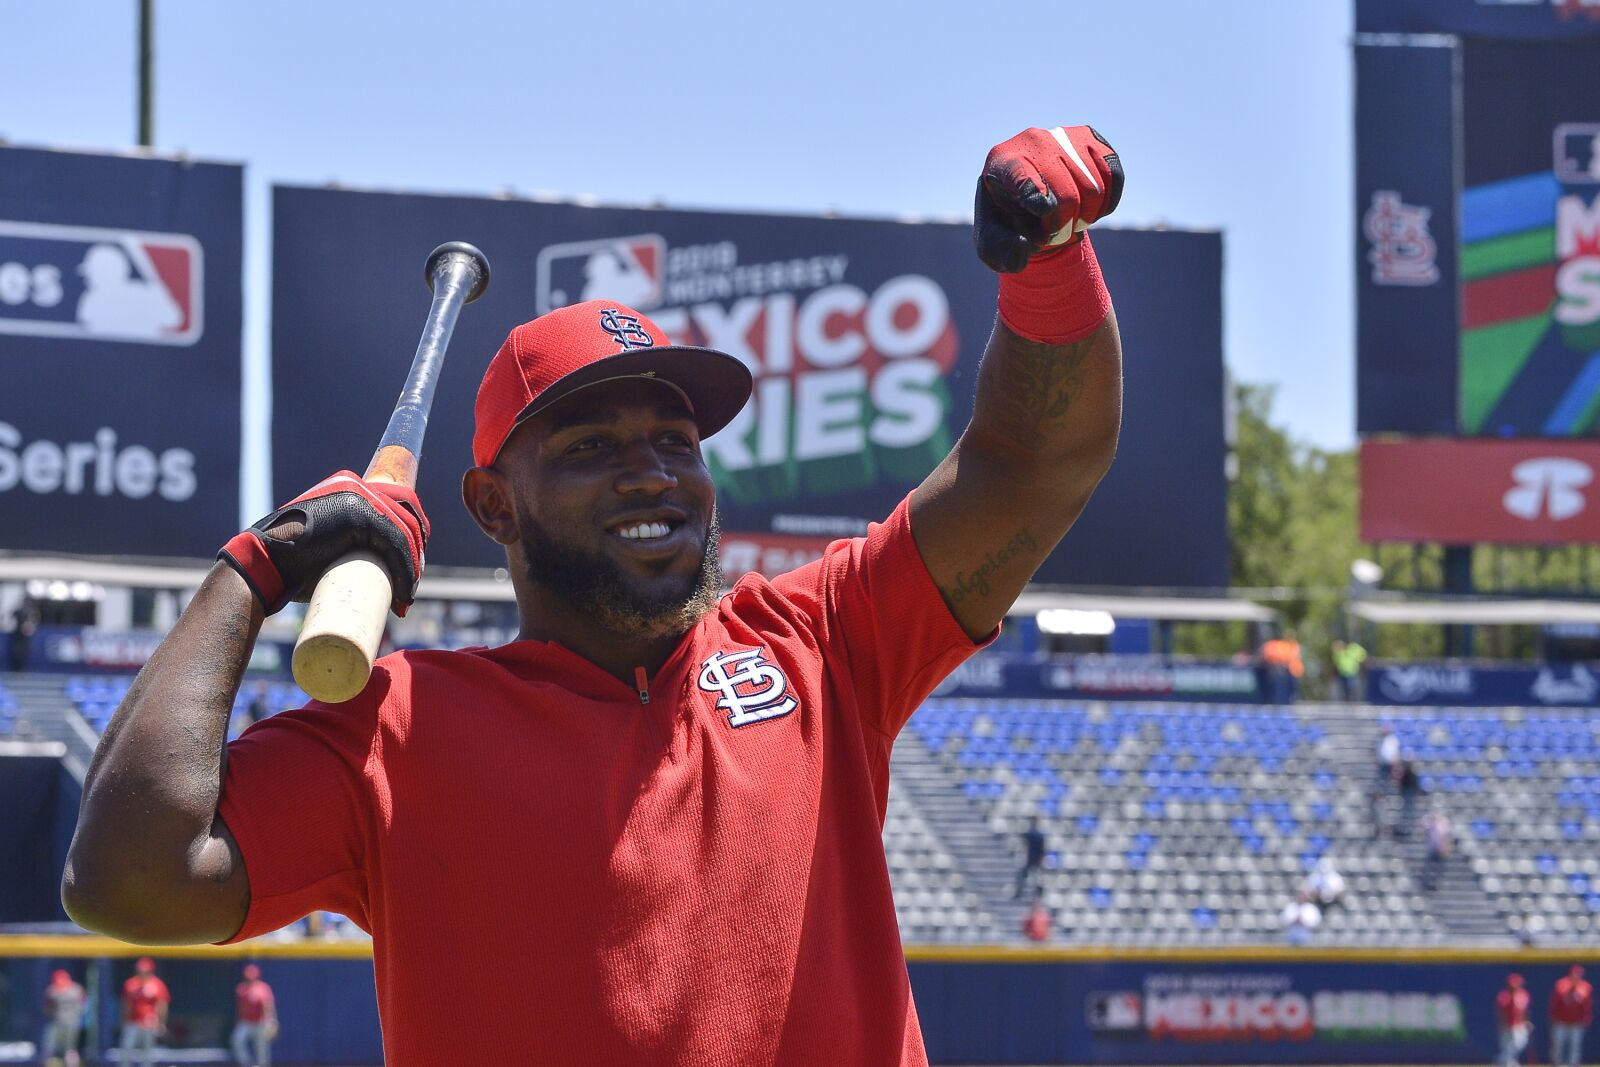 St. Louis Cardinals: Marcell Ozuna is making us all eat crow